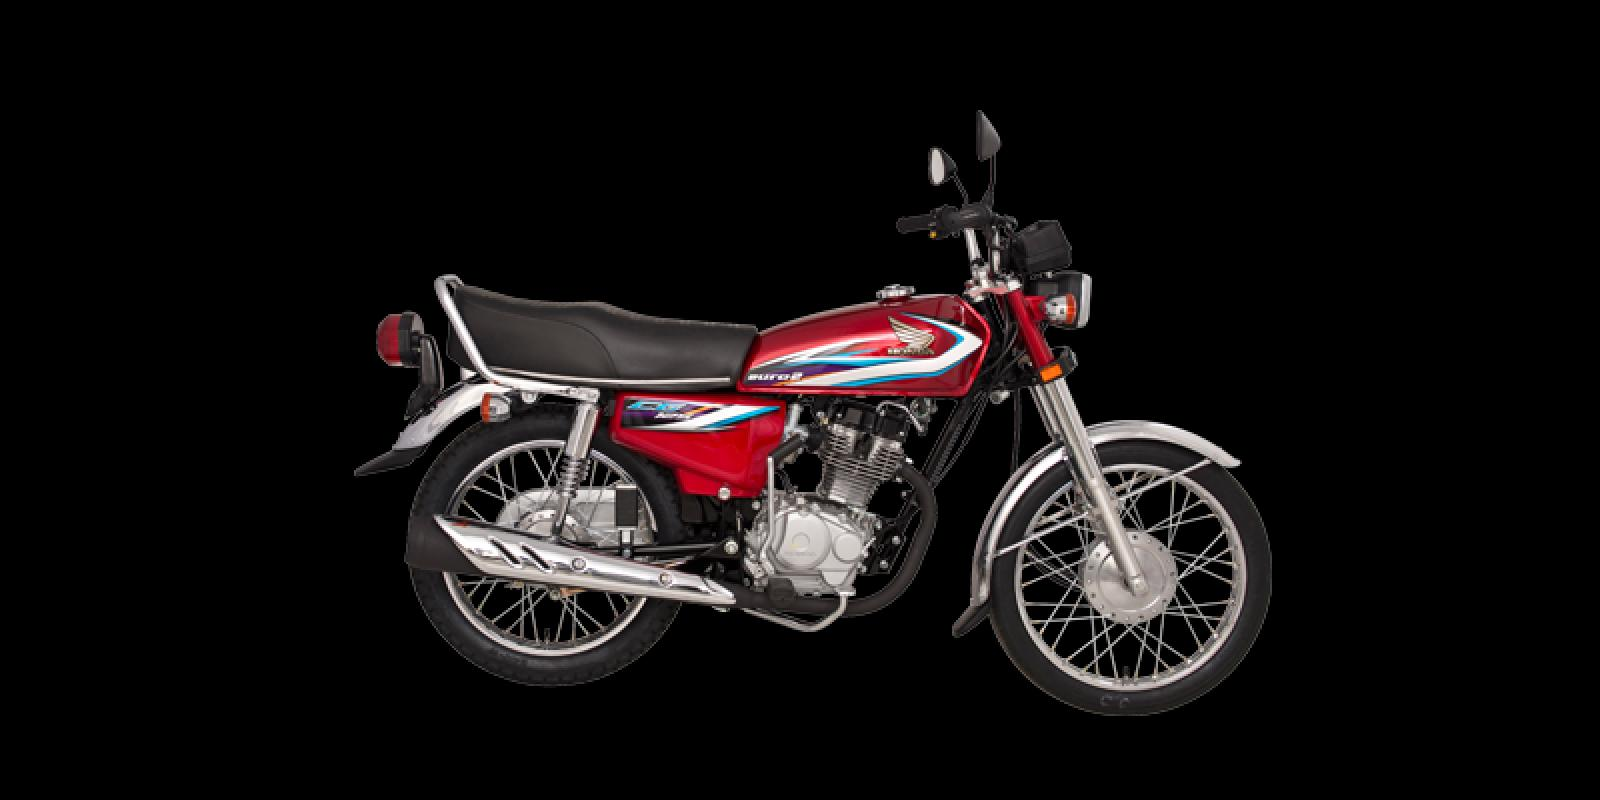 Atlas Honda CG 125 - Millenium Power 2000 images #93433